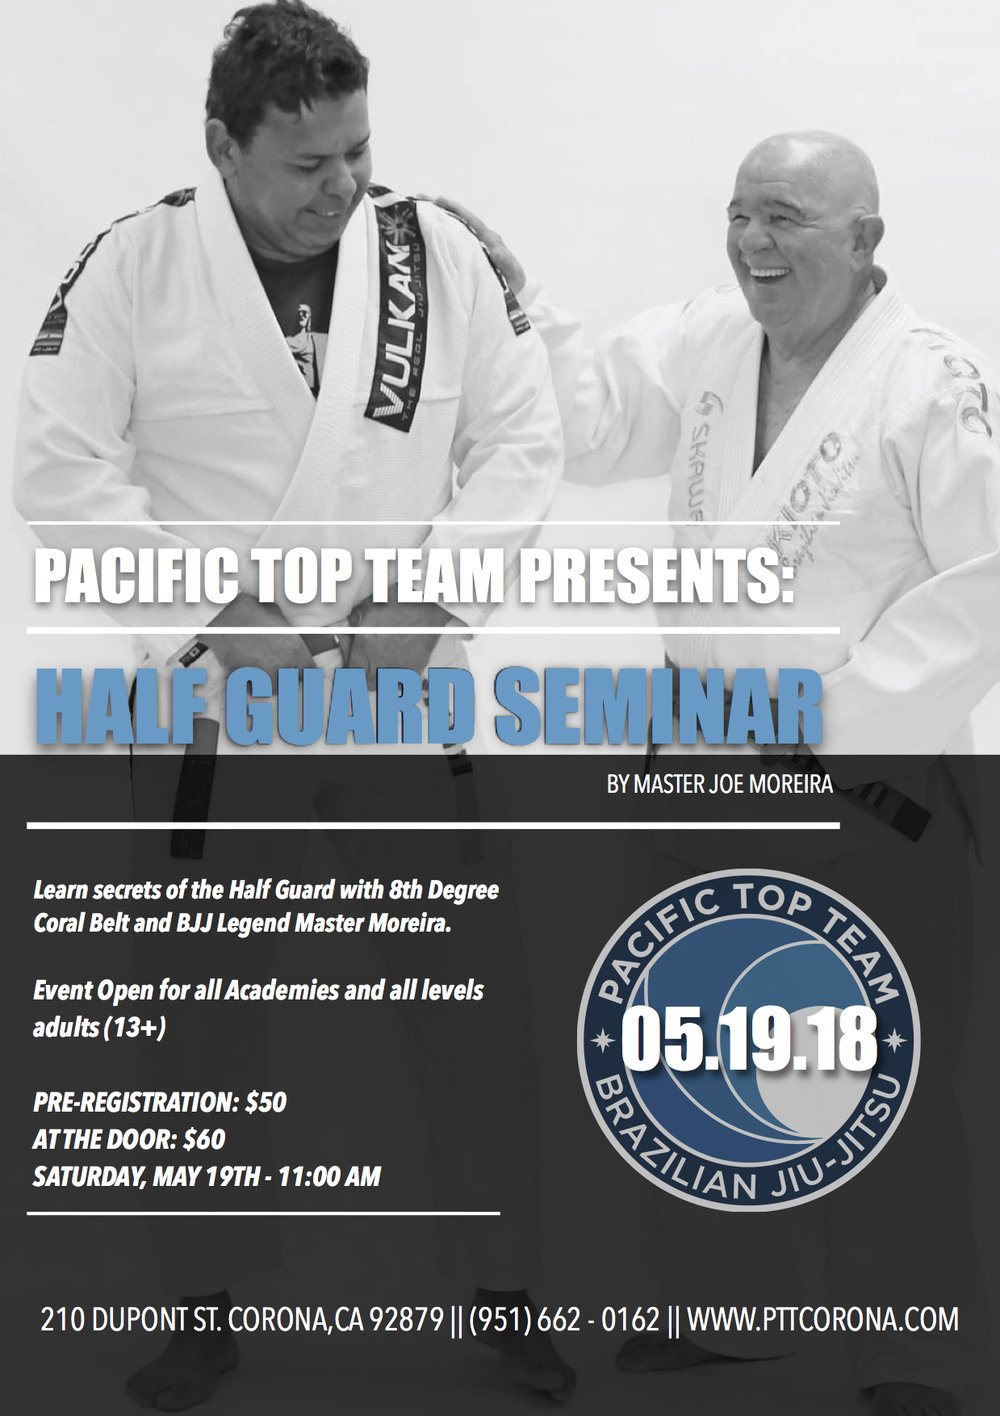 BRAZILIAN JIU JITSUHalf Guard Seminar in corona